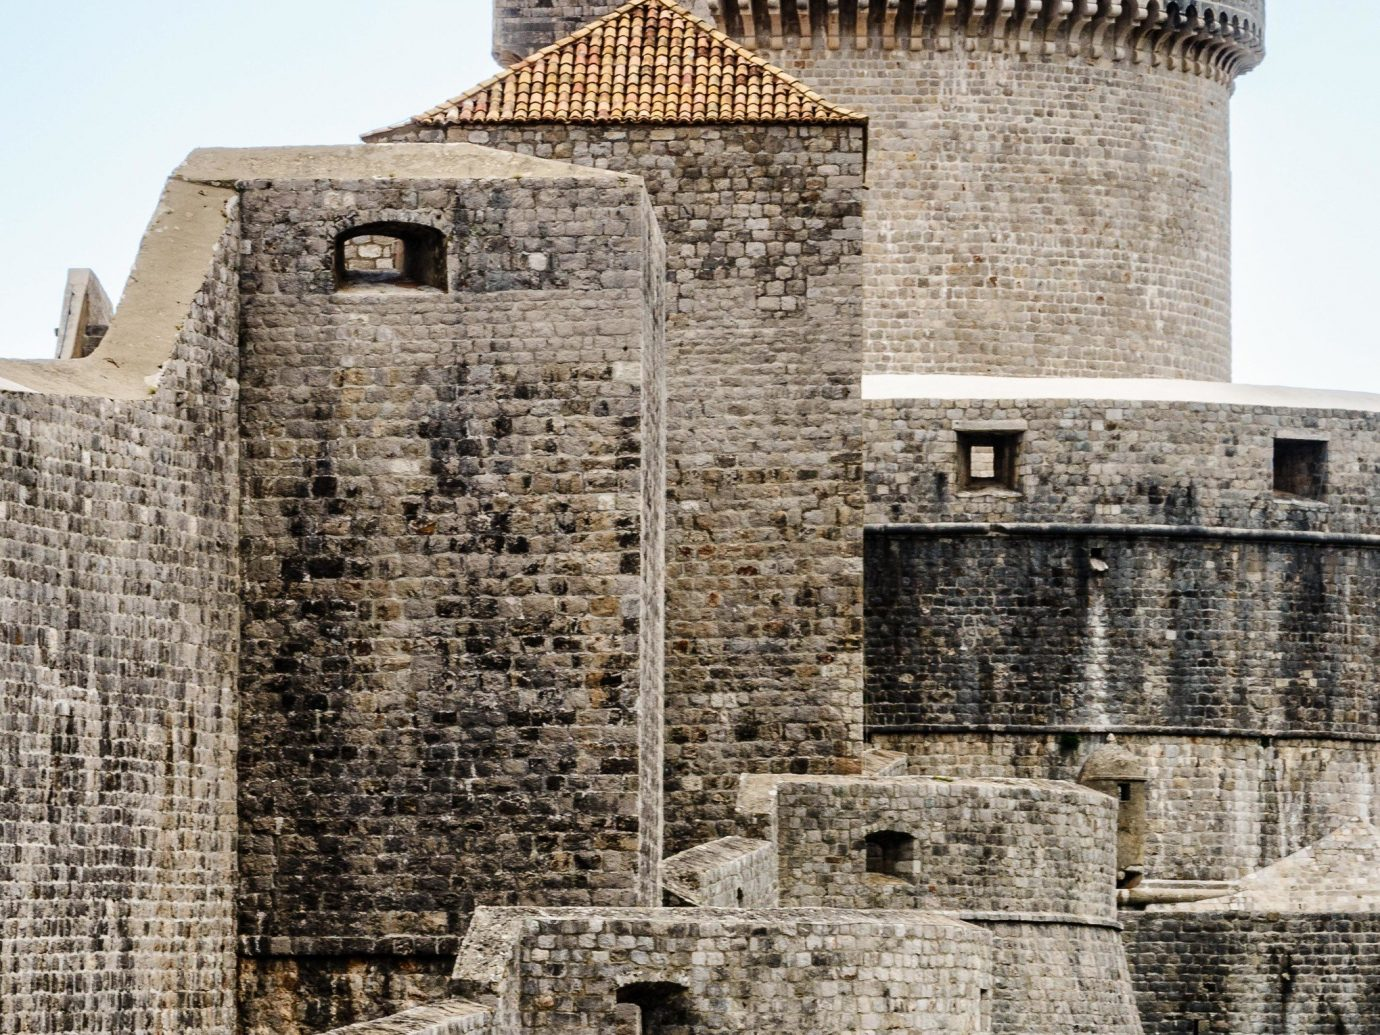 Offbeat building outdoor historic site fortification castle wall ancient history history archaeological site medieval architecture Ruins sky château middle ages stone tower facade turret tours structure